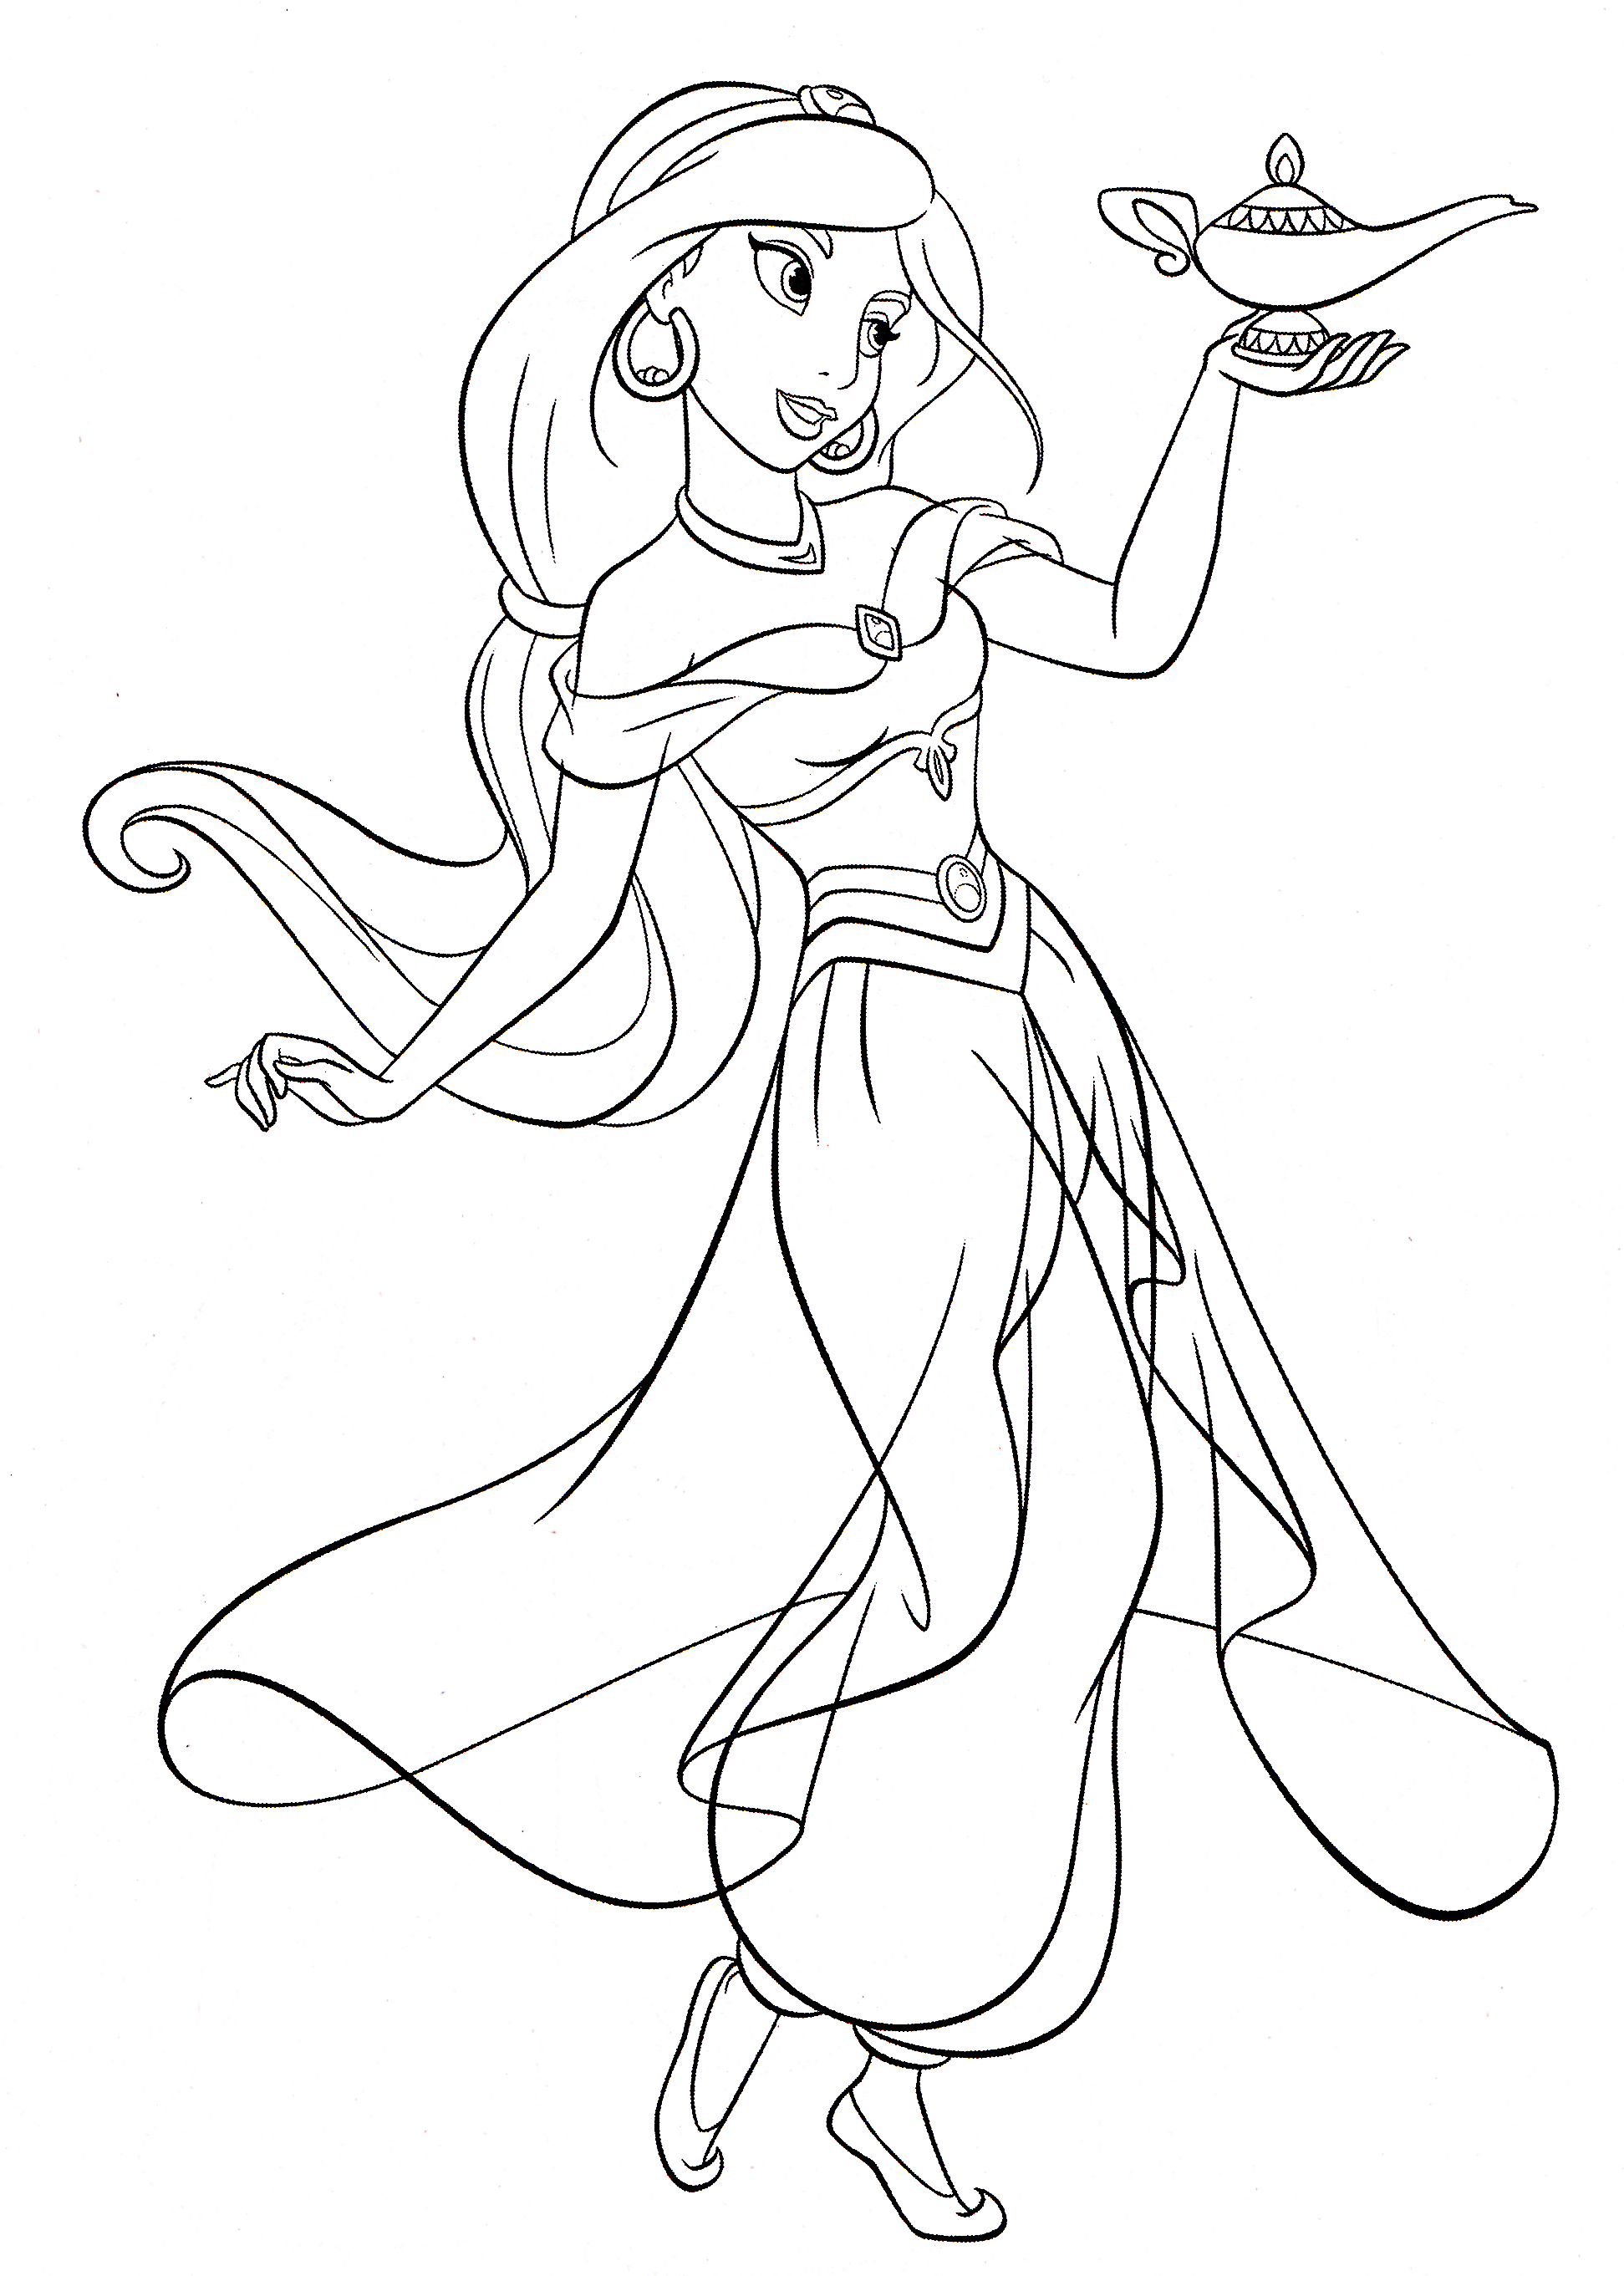 Jasmine Coloring Pages To Print Archives Free Coloring